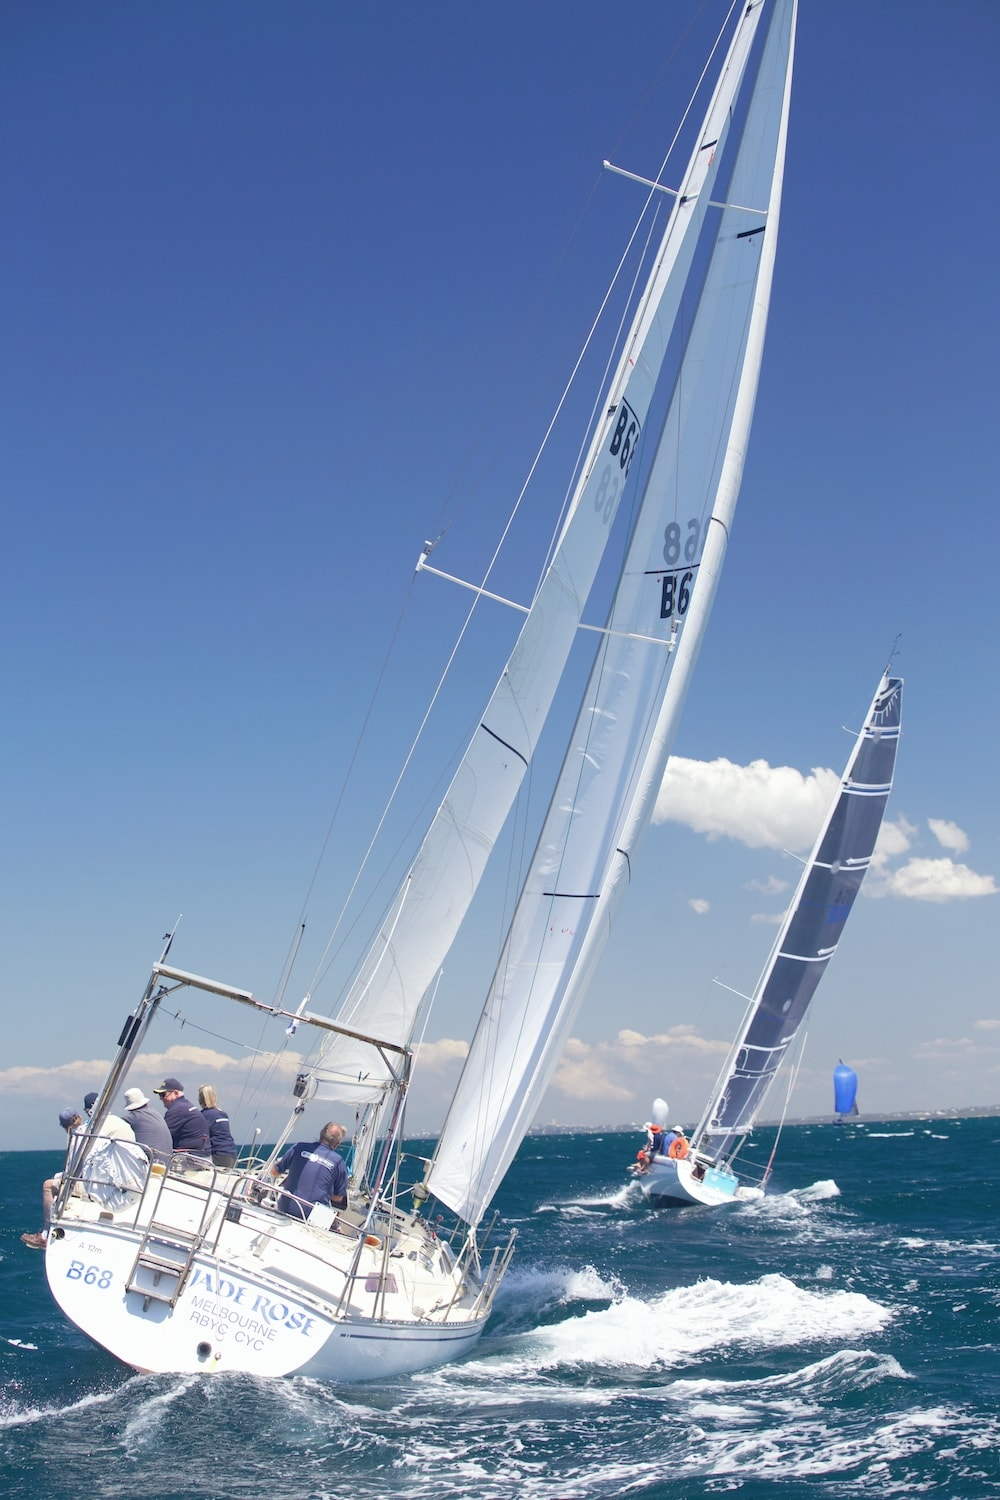 REGULAR SAILING DAYS - Our SAMS Series is held on SundaysPlease be at the Clubroom between 10:30am and 11.00am for sign on, Sunday's race commences at 12.30pm. Our WAMS series is held on WednesdaysPlease be at the Clubroom between 10:30am and 11:30am for sign on. Wednesday's race commences at 1.00pm.For full sailing venue please see the Calendar